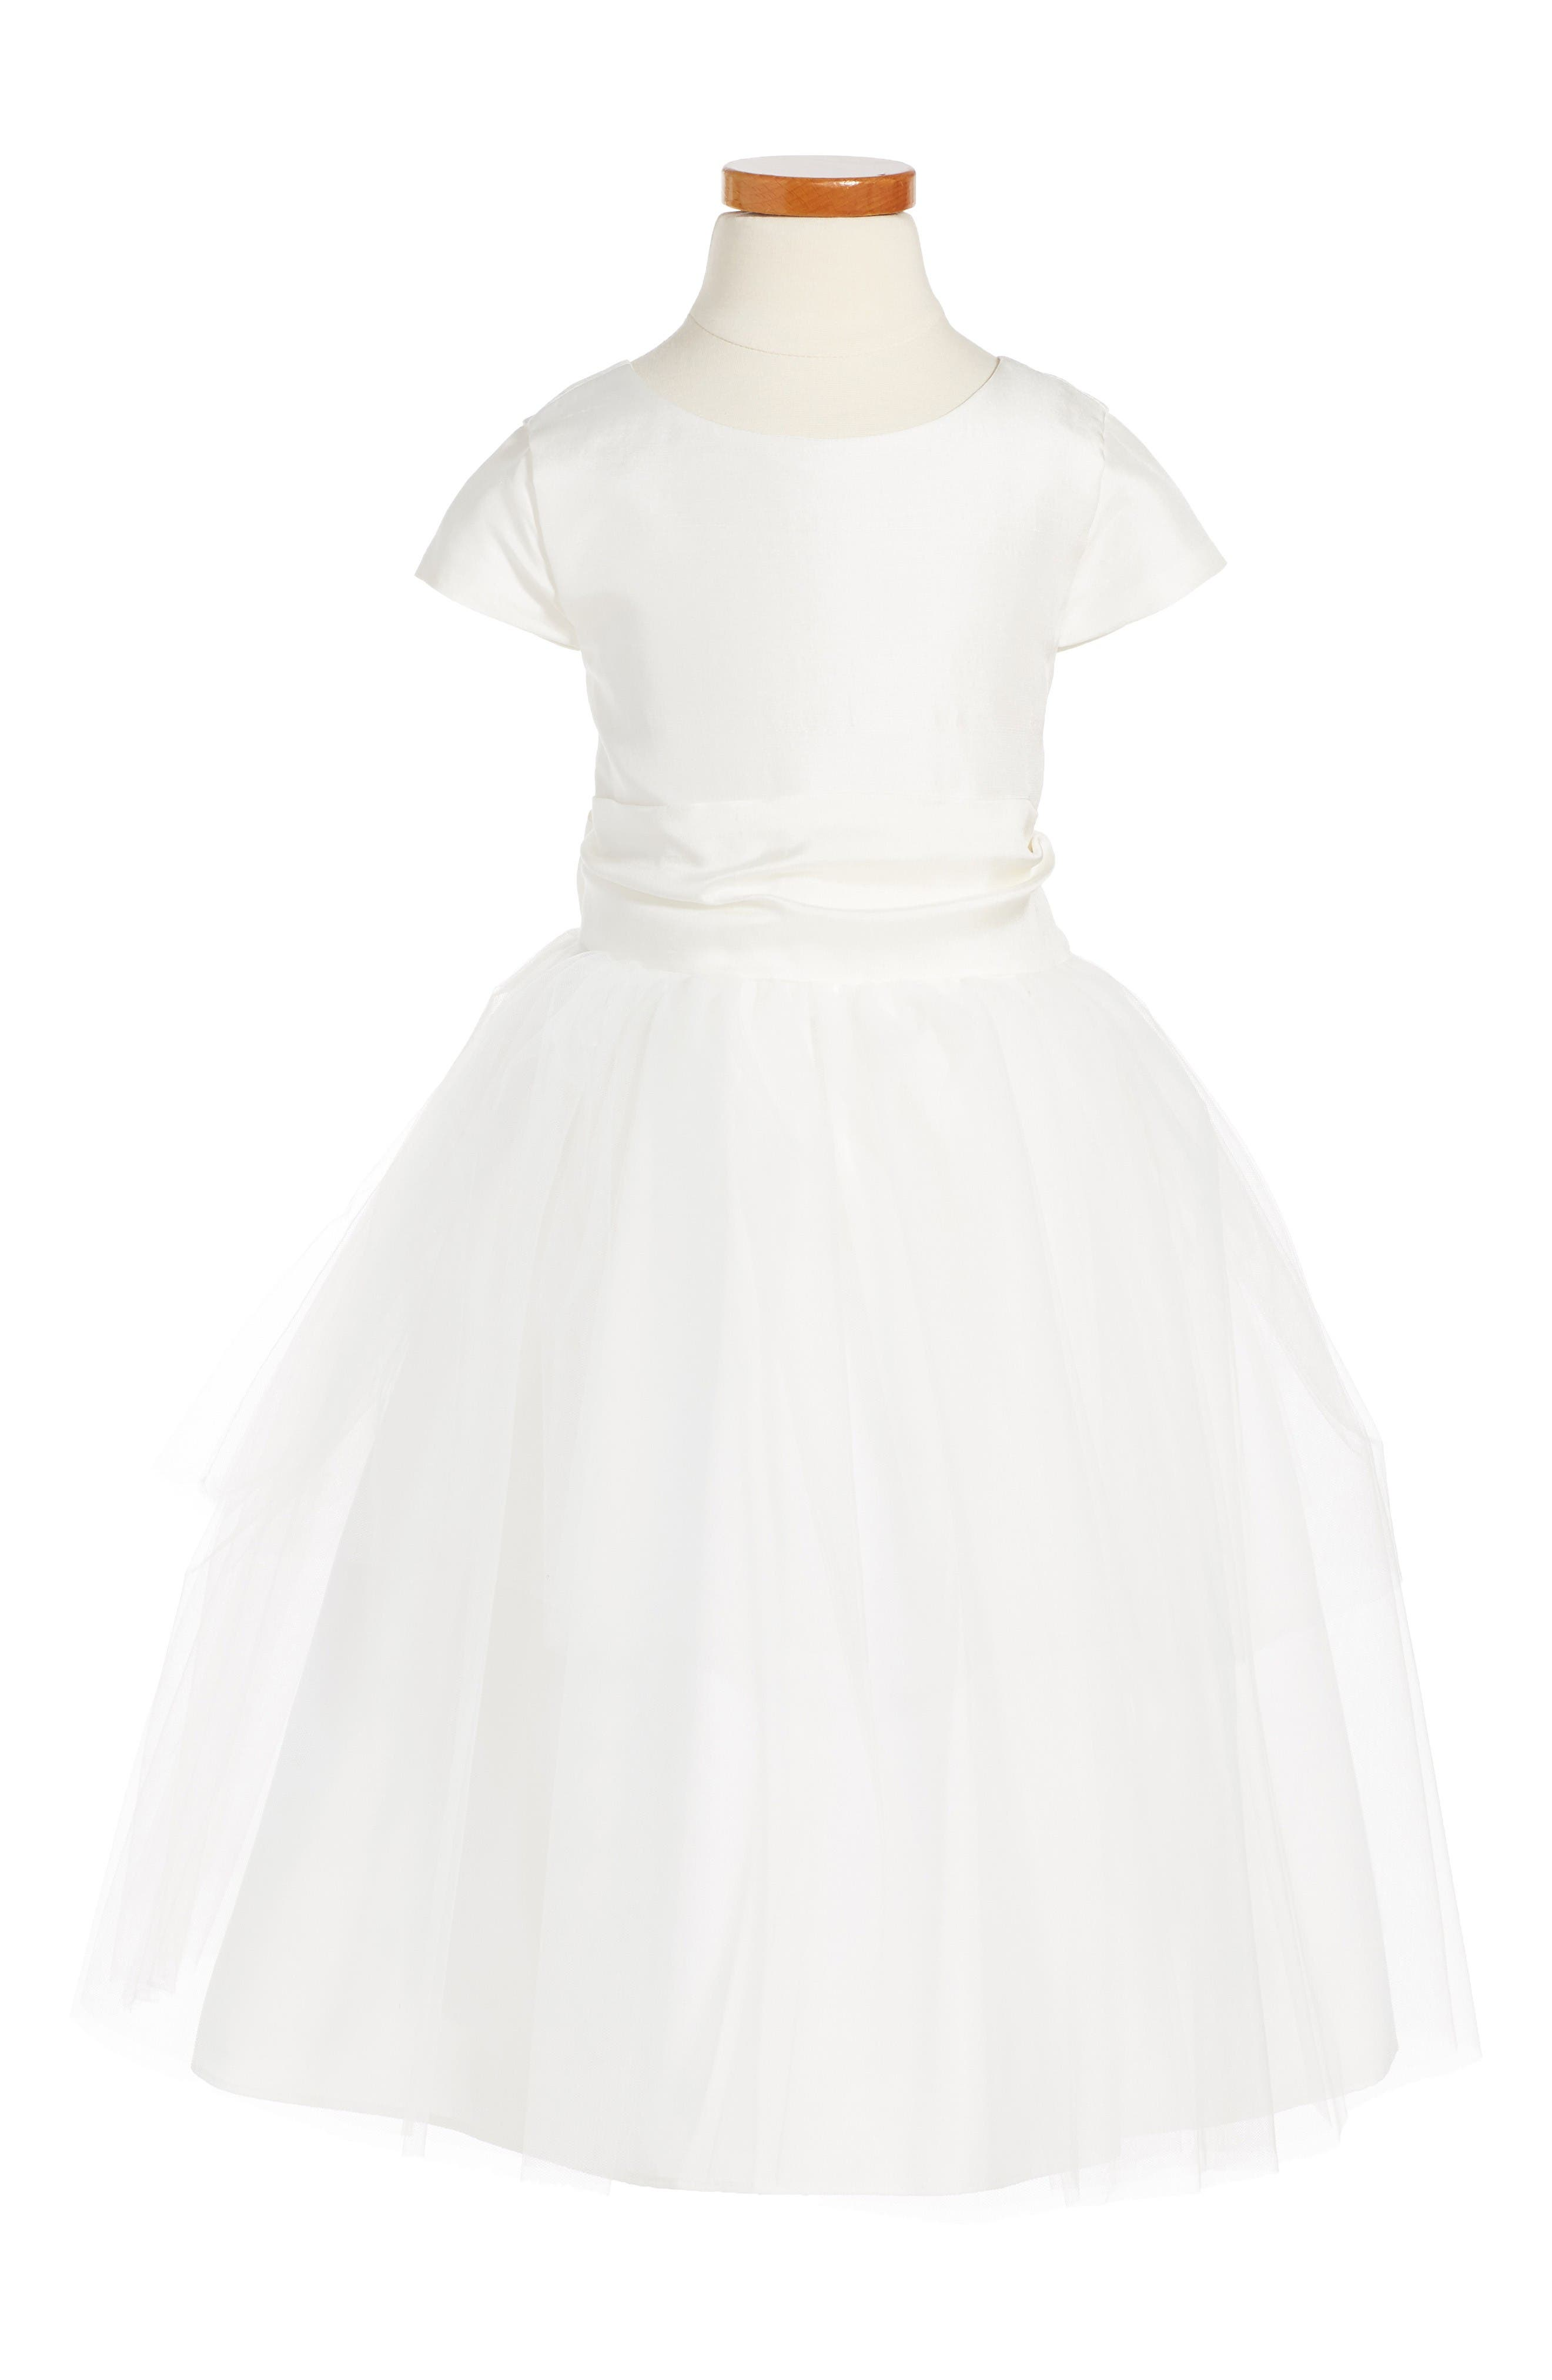 Us Angels Cap Sleeve Dress (Toddler Girls & Little Girls)